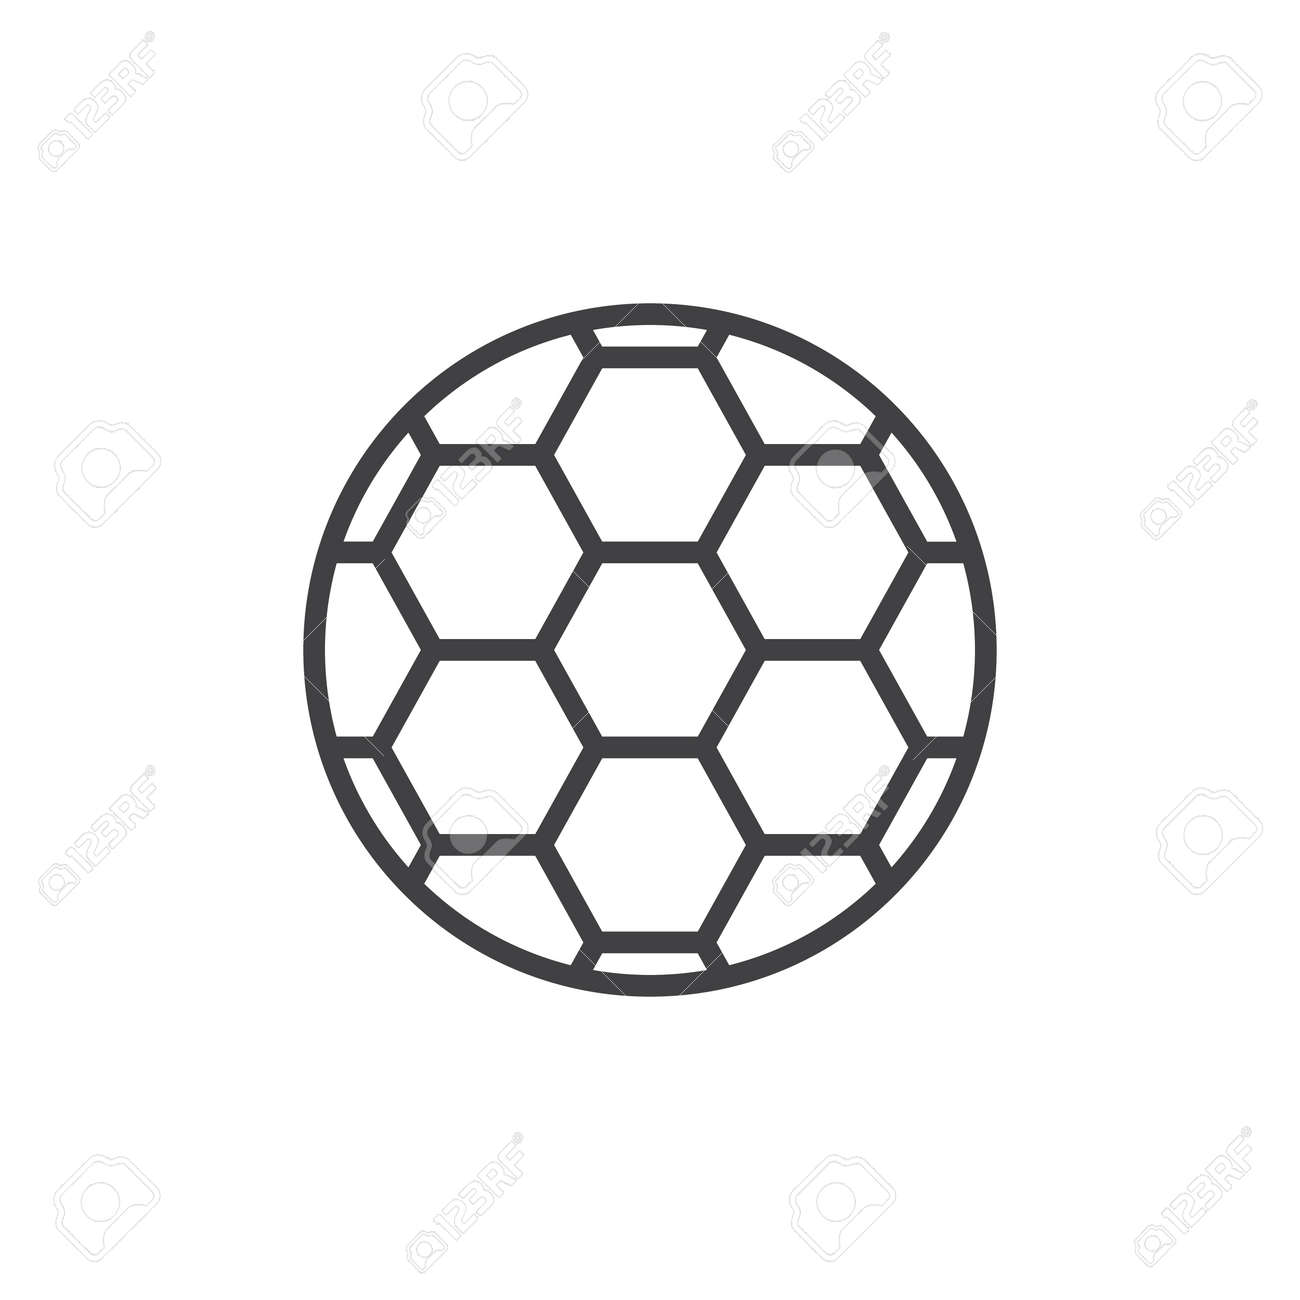 Soccer Ball Line Icon Outline Vector Sign Linear Style Pictogram